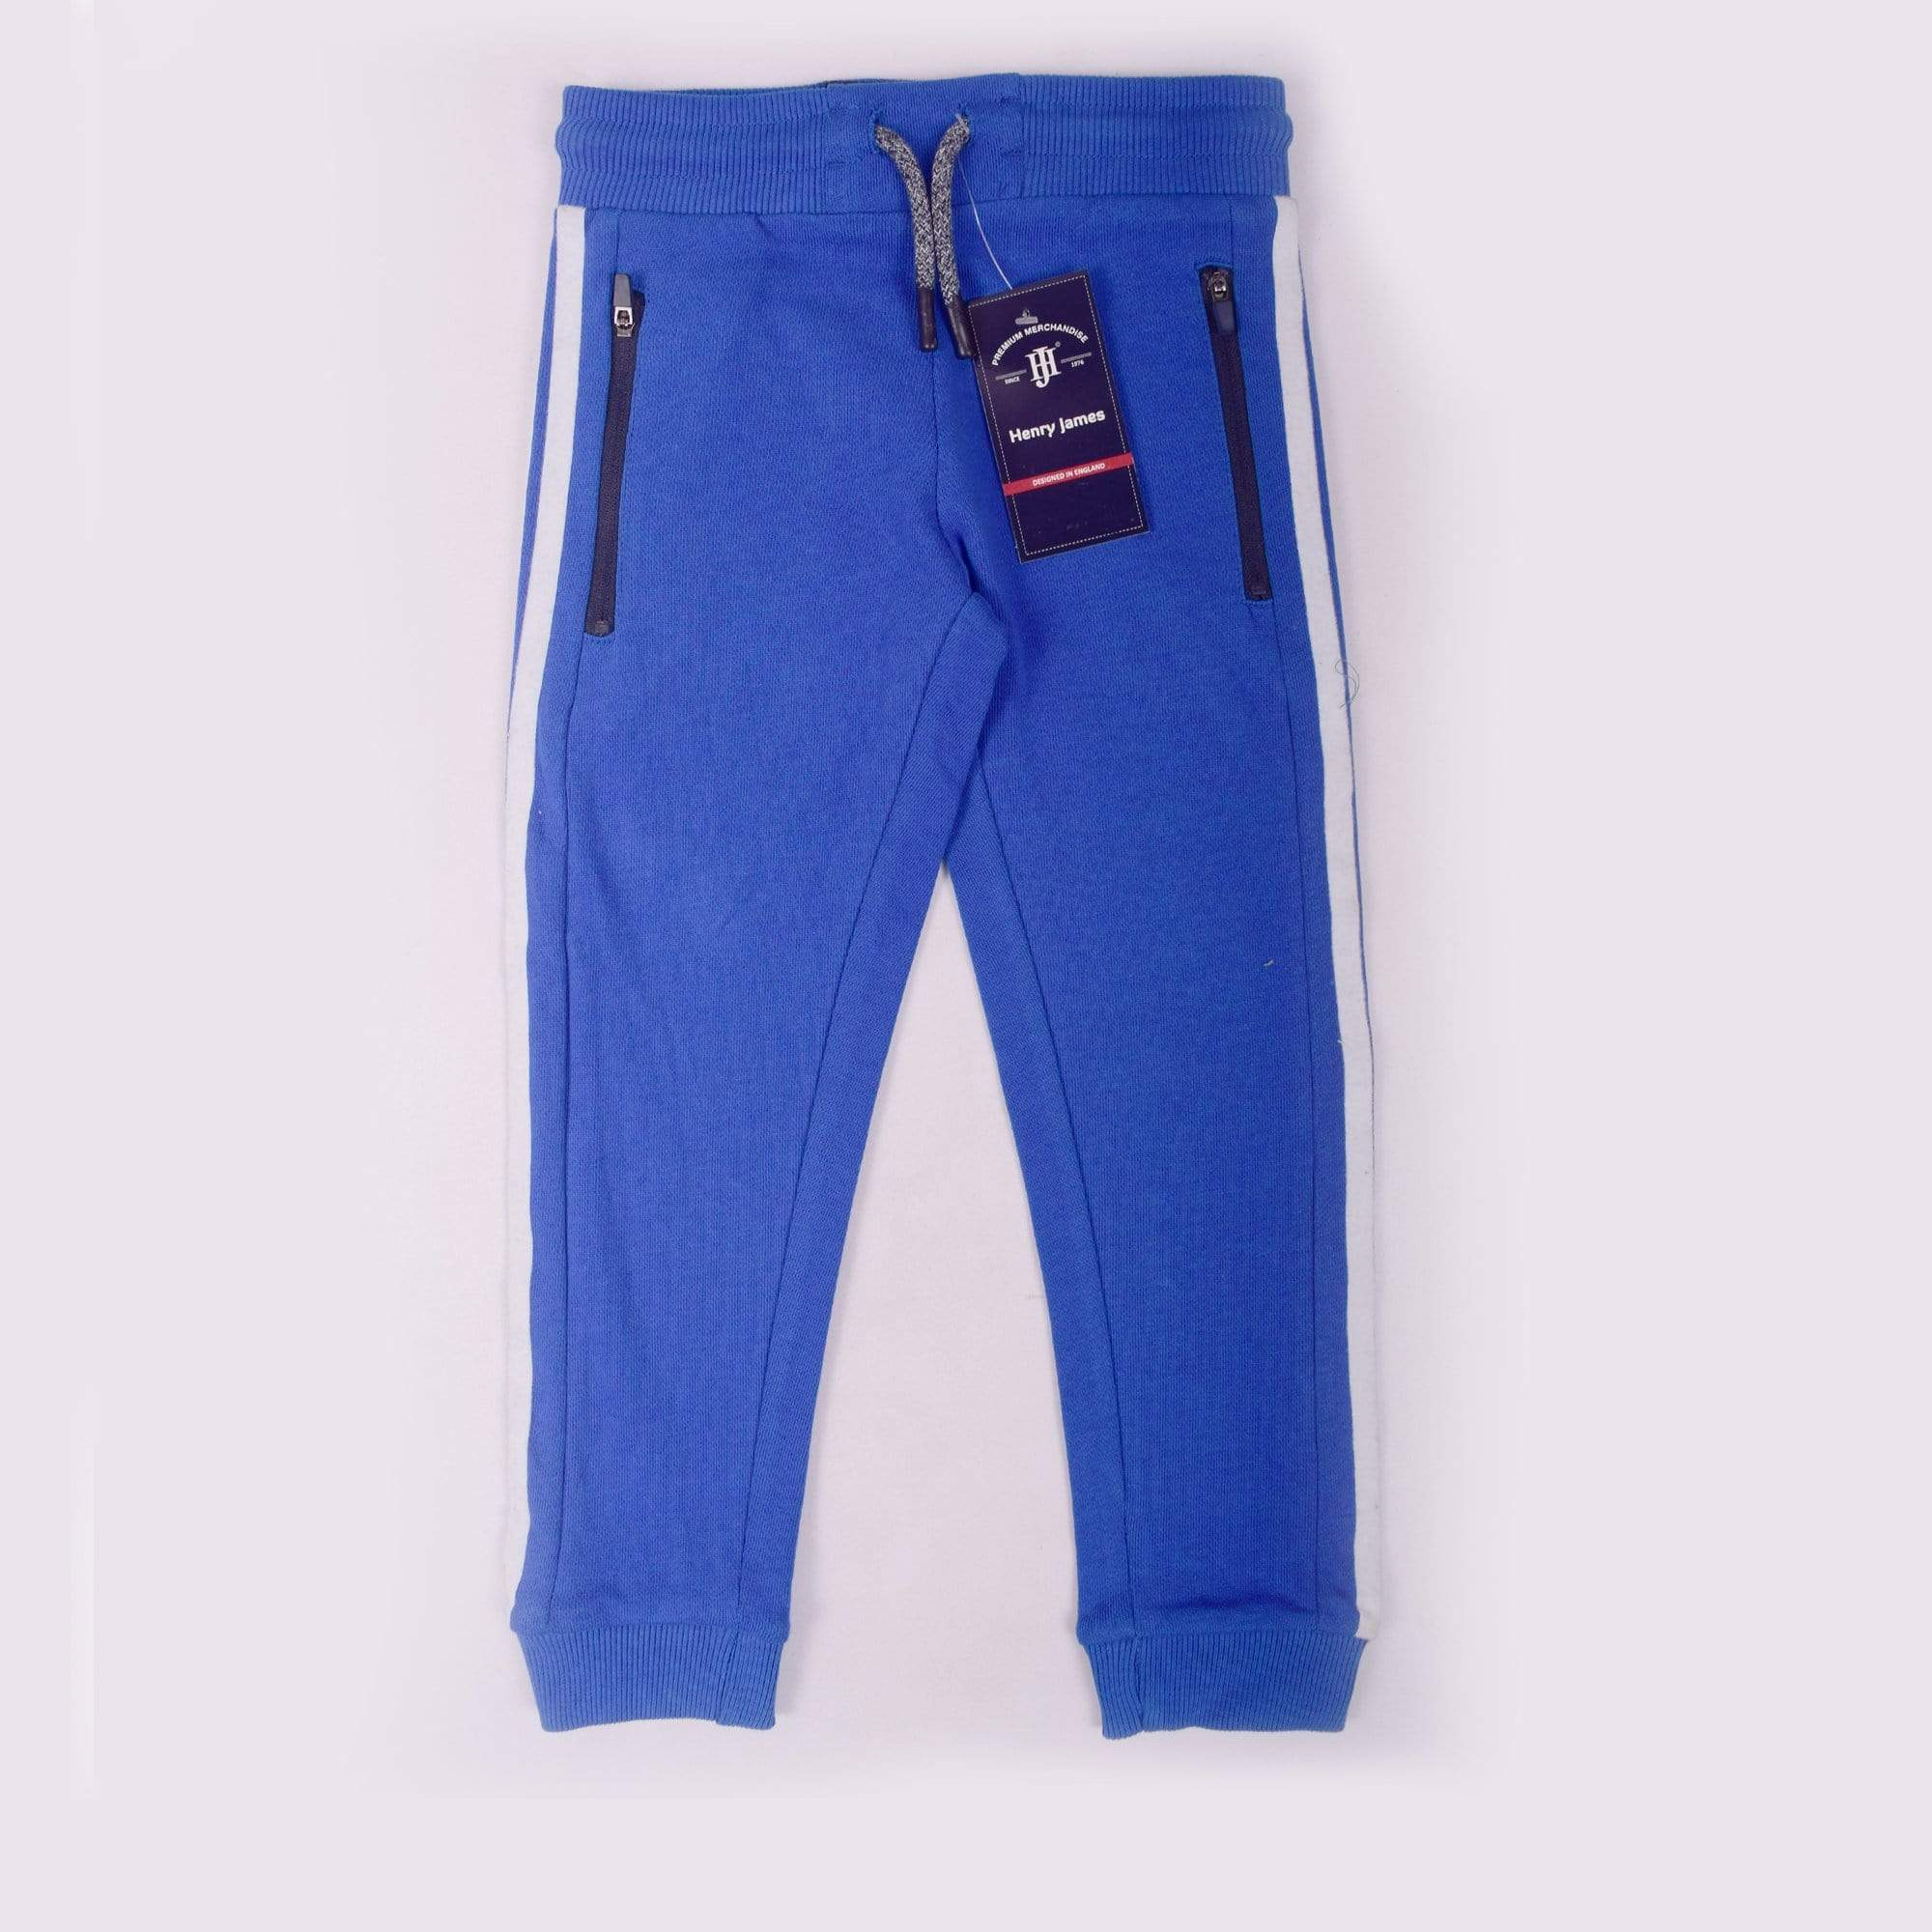 Stone Harbor Kid's Jogger Royal Blue / 3-4 years Boy's Henry James Royal Slim Fit Sweatpants